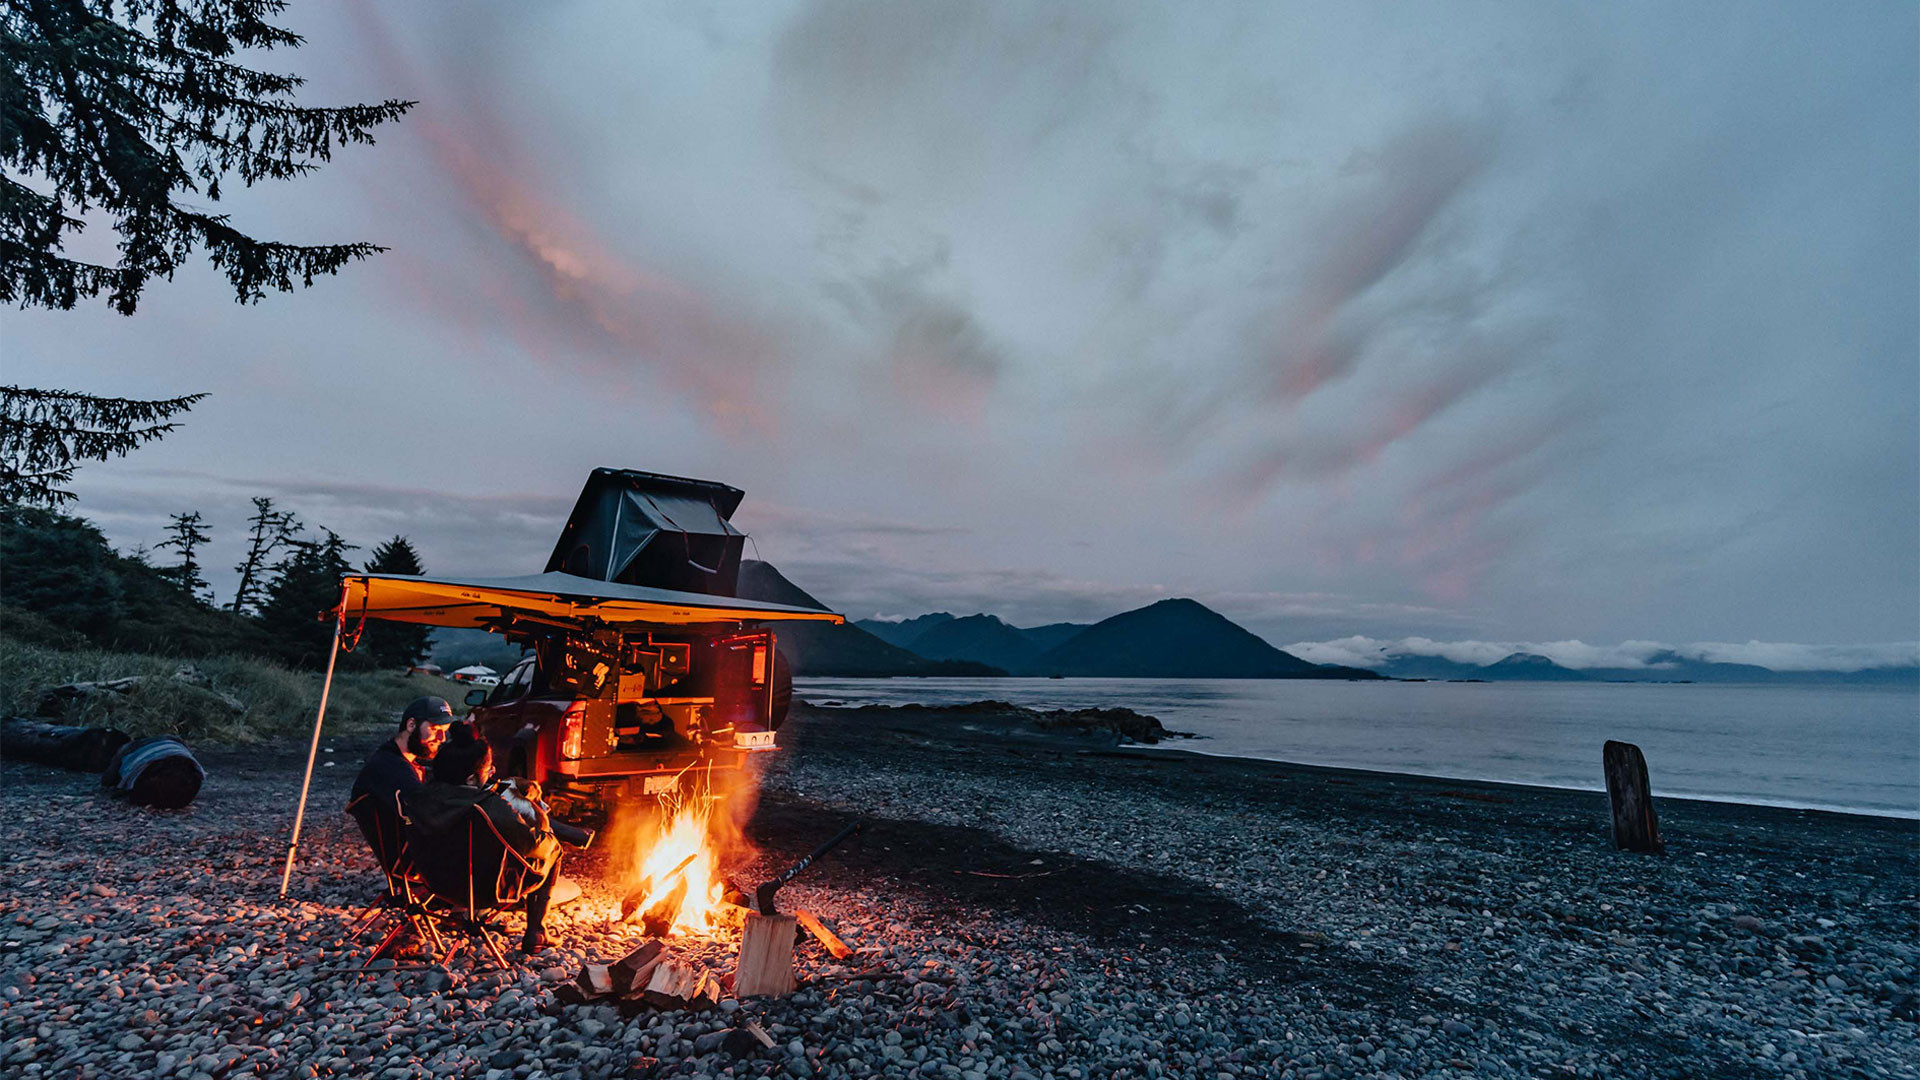 Gears of Travel, Canadian adventure | Chevrolet with canopy camper next to campfire